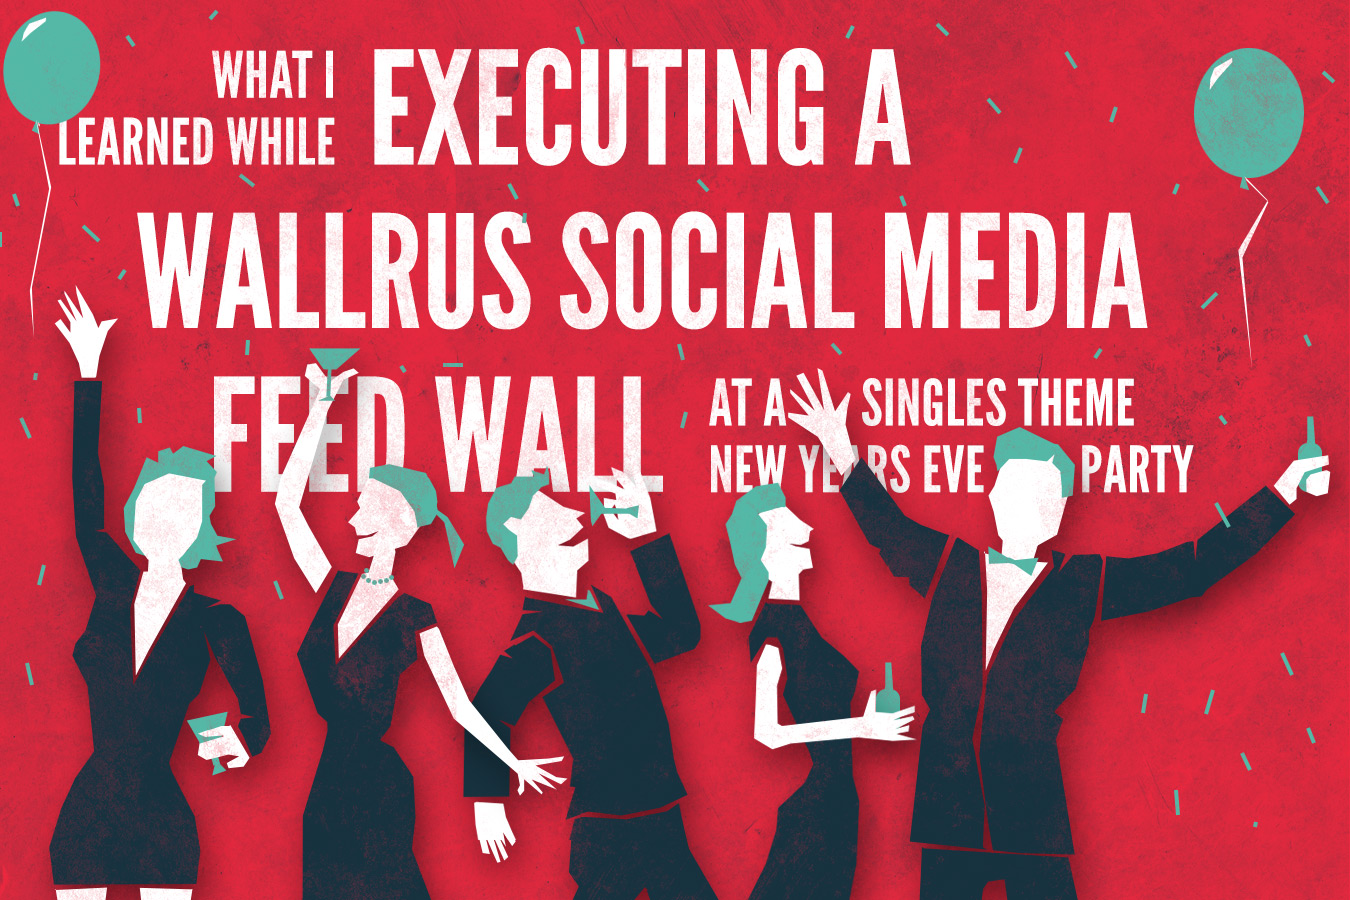 What I Learned While Executing a Wall-R-Us Social Media Feed Wall at a Singles Theme New Years Eve Party